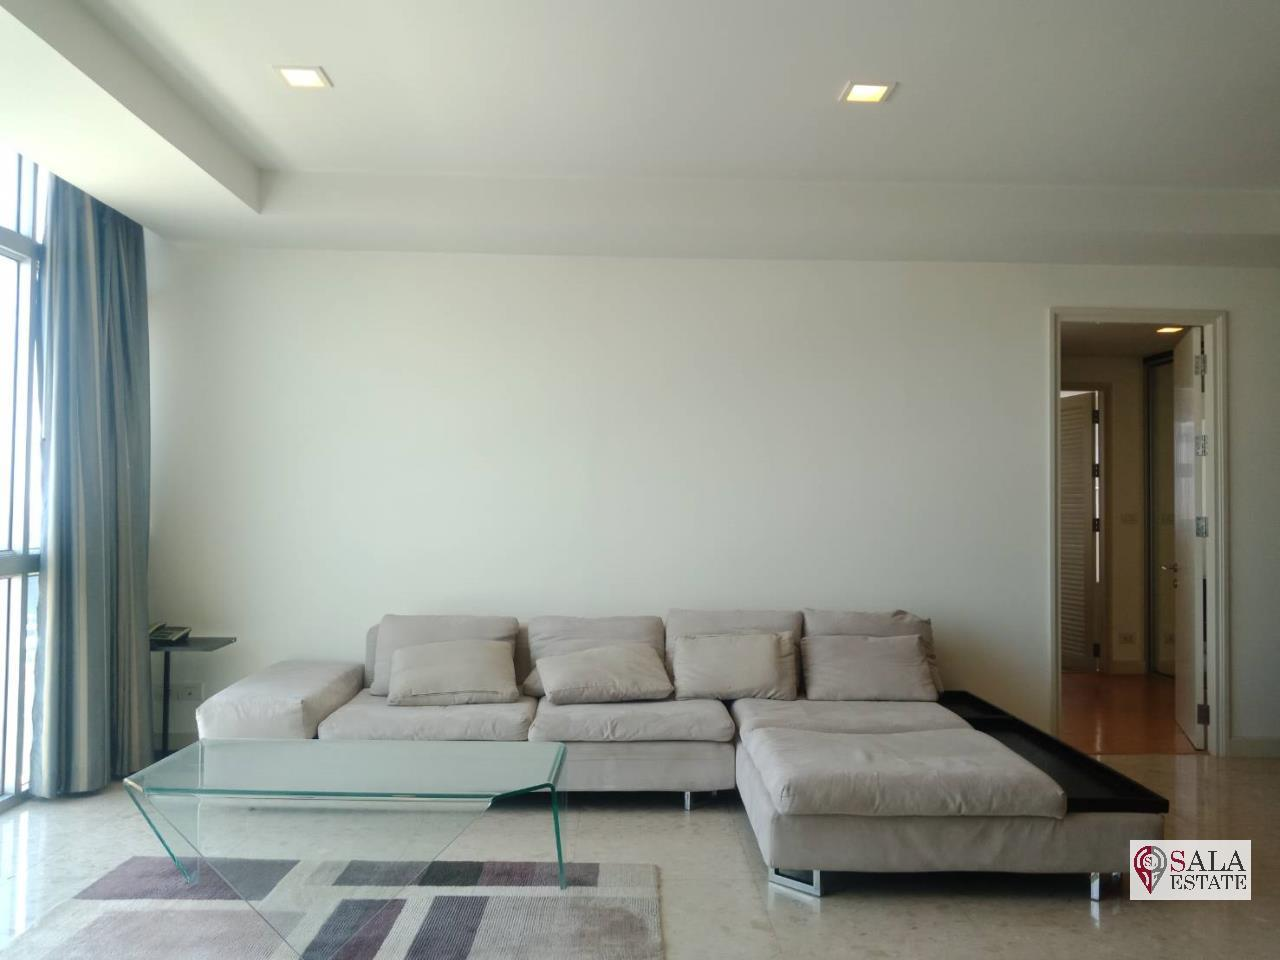 SALA ESTATE Agency's NUSASIRI – BTS EKKAMAI, 3BEDROOMS 2BATHROOMS , FULLY FURNISHED, CITY VIEW 2